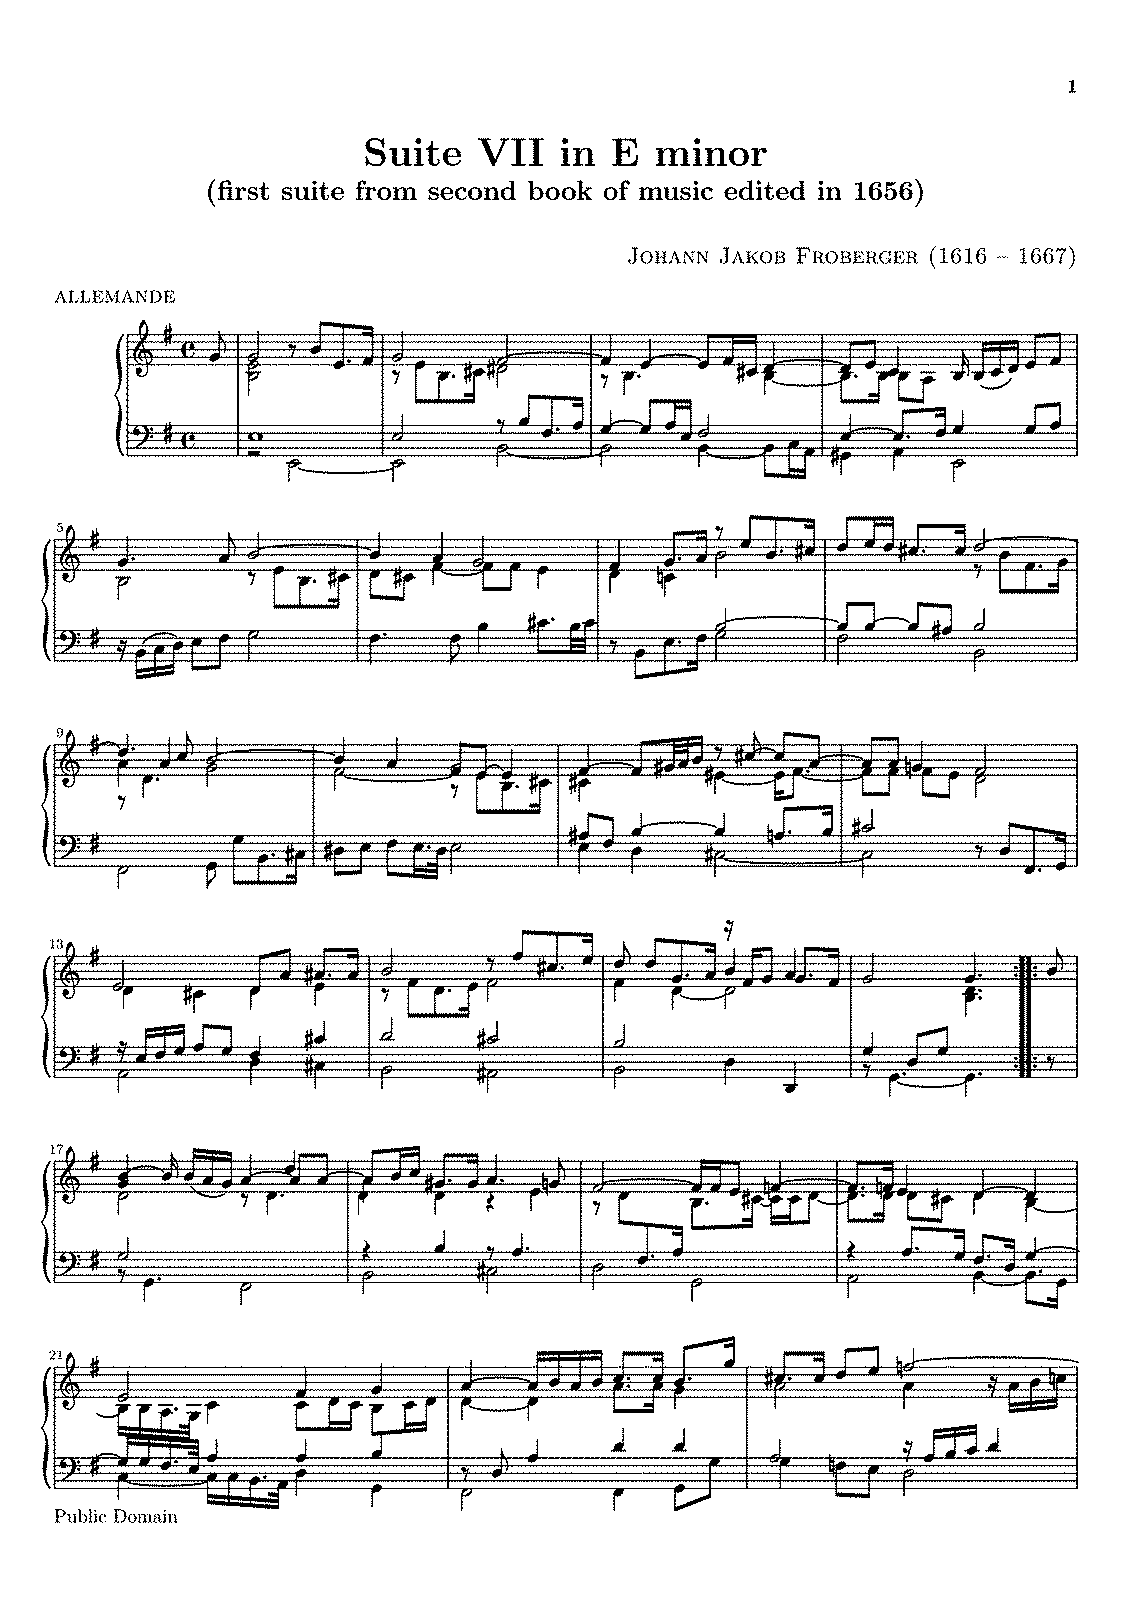 Froberger (1656) Suite 7 in e.pdf